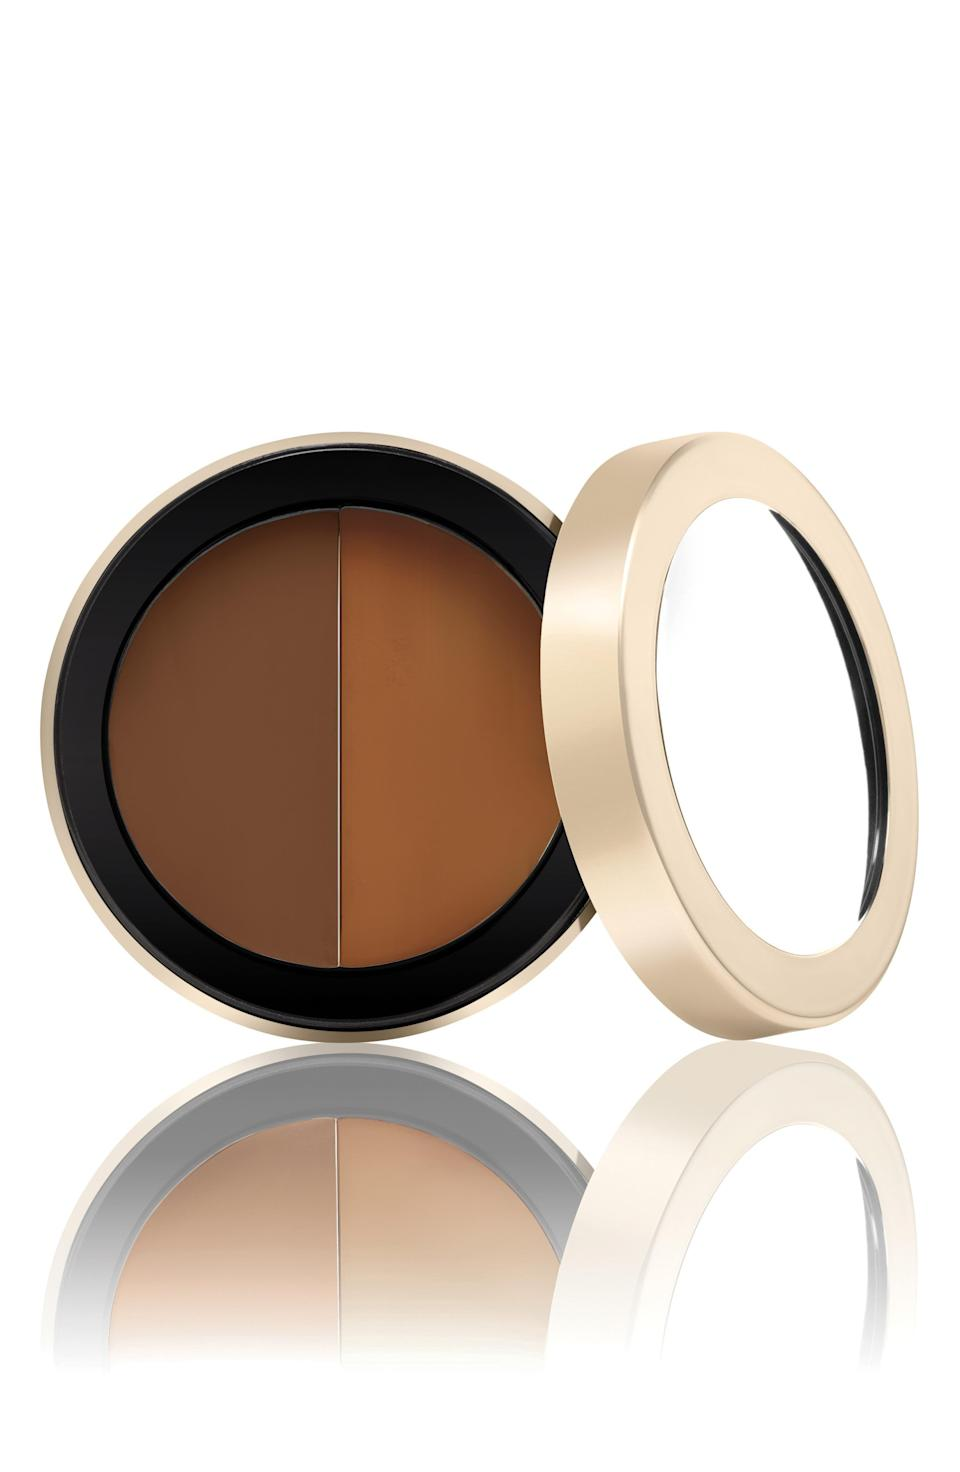 """<p><strong>JANE IREDALE</strong></p><p>nordstrom.com</p><p><strong>$32.00</strong></p><p><a href=""""https://go.redirectingat.com?id=74968X1596630&url=https%3A%2F%2Fwww.nordstrom.com%2Fs%2Fjane-iredale-circle-delete-under-eye-concealer%2F3053528&sref=https%3A%2F%2Fwww.thepioneerwoman.com%2Fbeauty%2Fskin-makeup-nails%2Fg36563969%2Fbest-concealers-for-mature-skin%2F"""" rel=""""nofollow noopener"""" target=""""_blank"""" data-ylk=""""slk:Shop Now"""" class=""""link rapid-noclick-resp"""">Shop Now</a></p><p>Sold in four color combos, this 2-in-1 concealer lets the user blend their perfect shade each day. The formula itself touts jojoba oil and a series of vitamins designed to keep the under-eye area looking hydrated and healthy.</p>"""